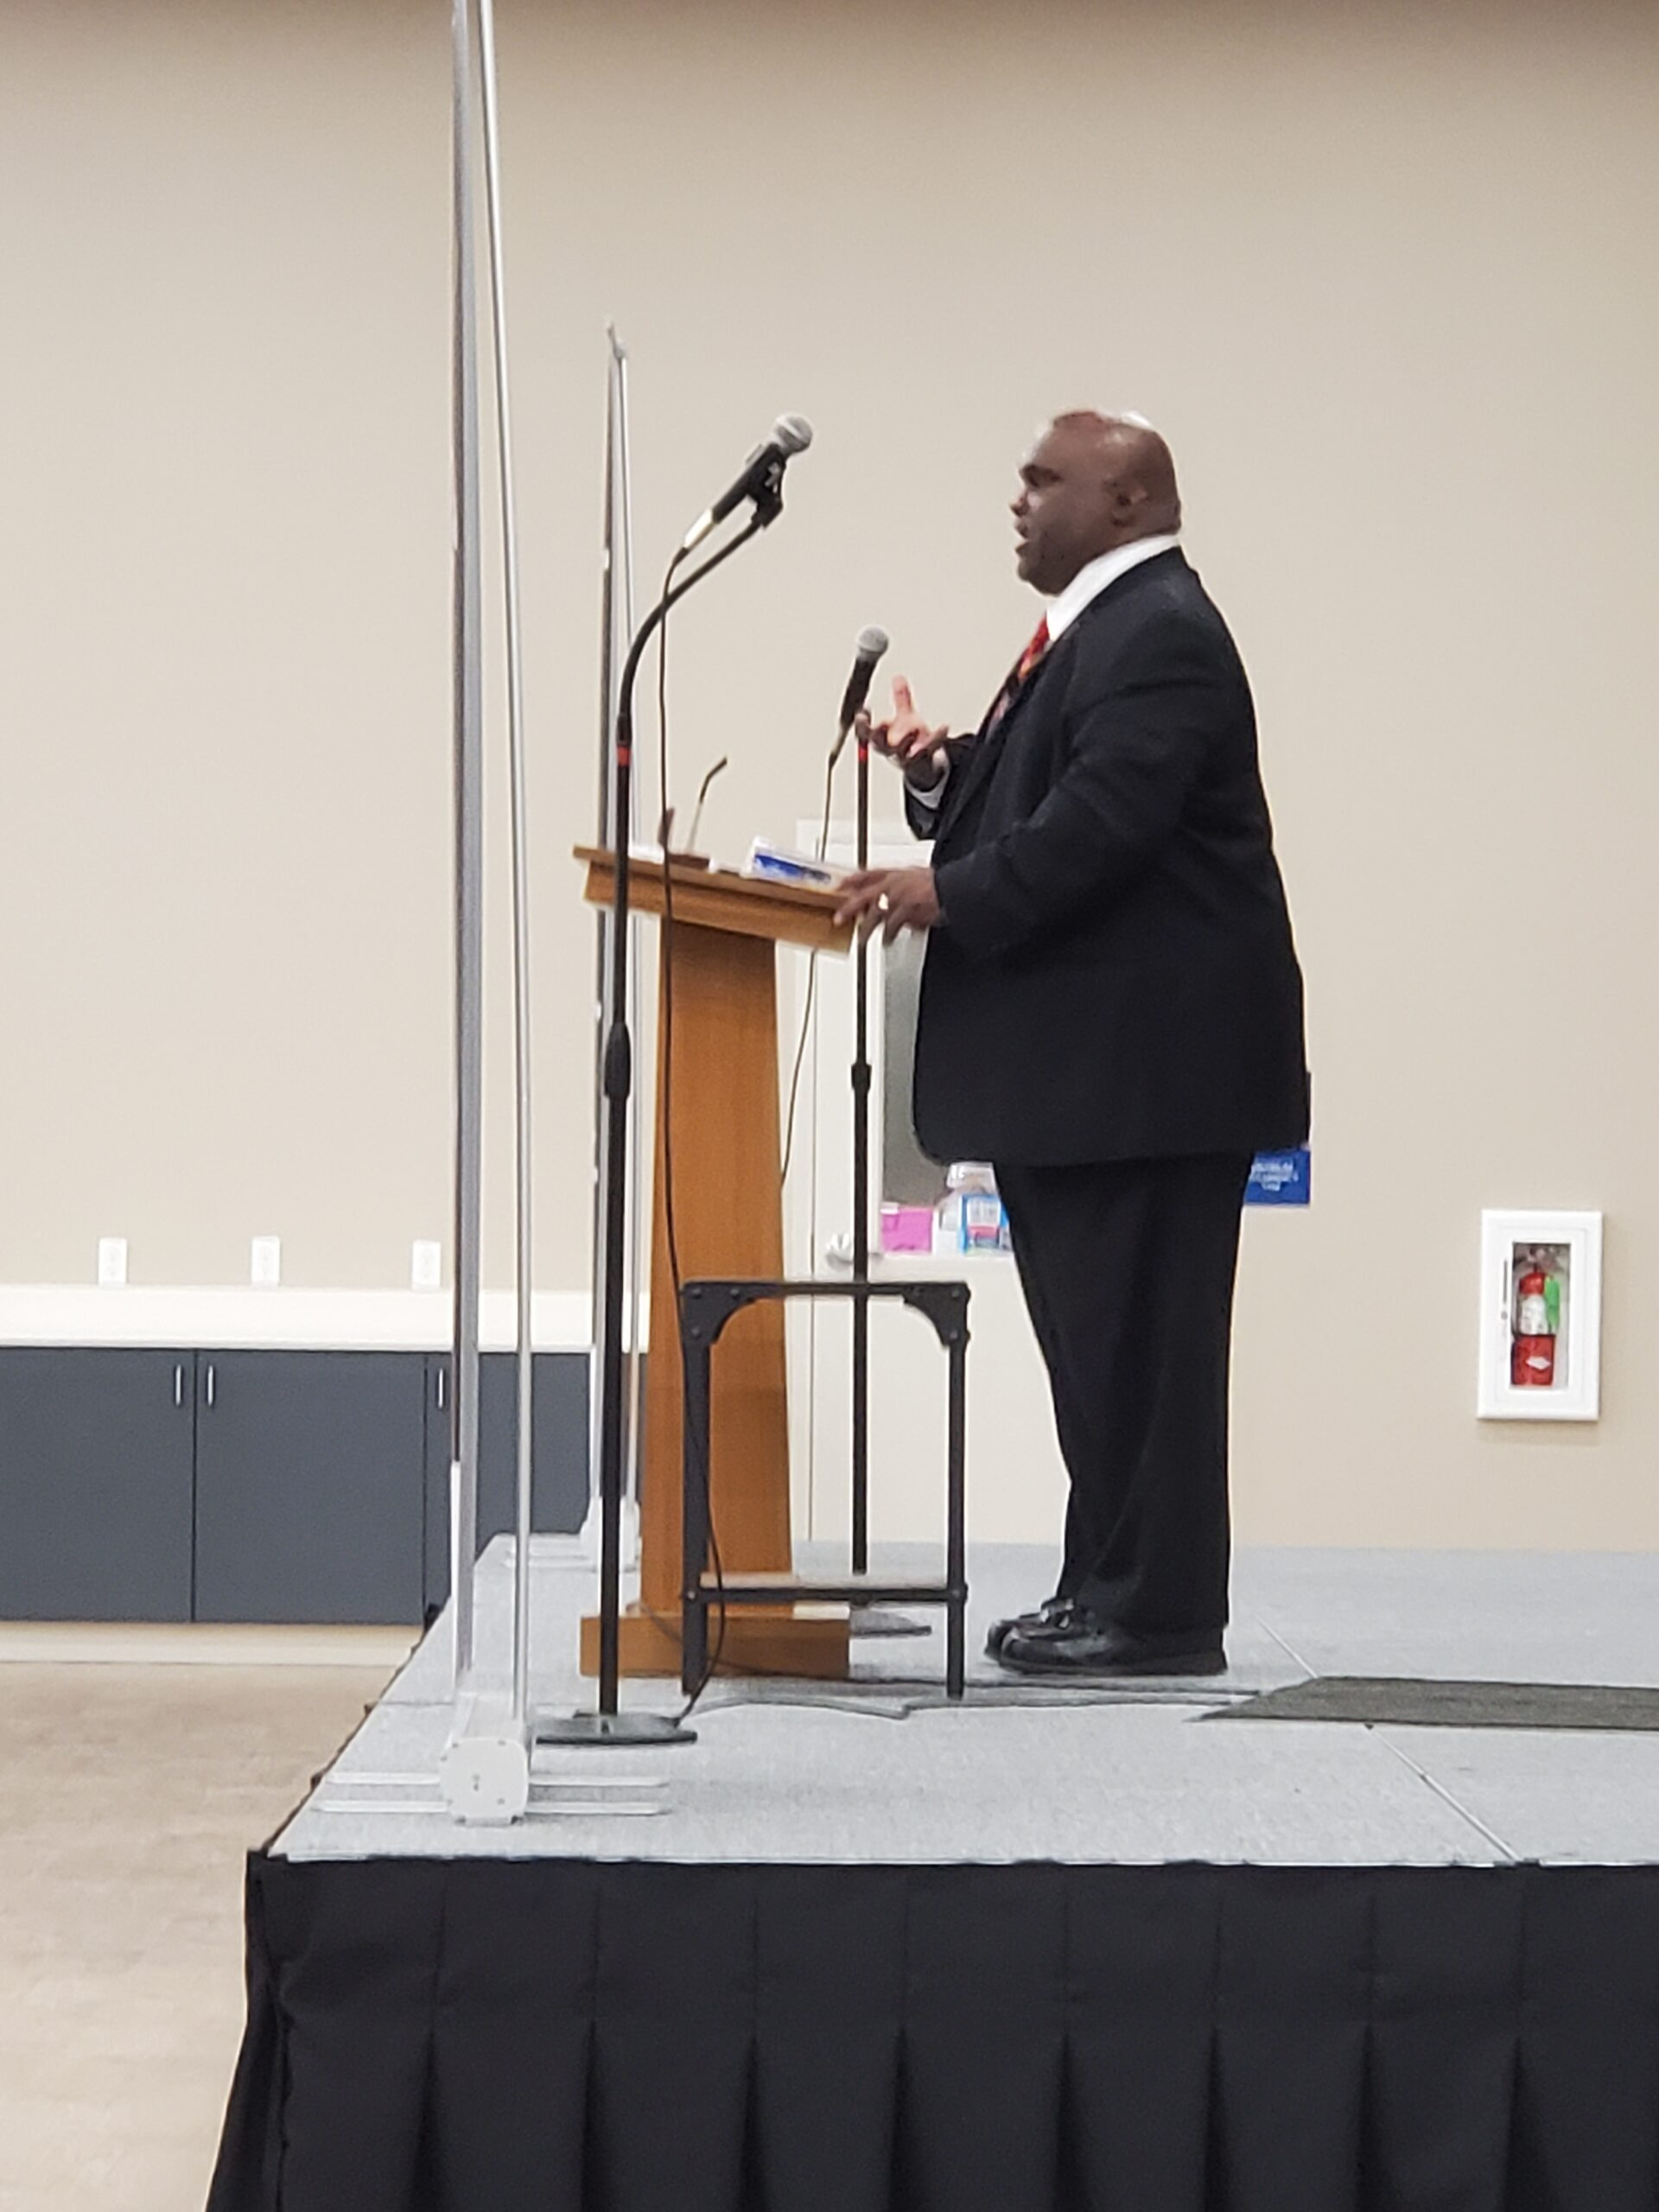 Deacon Harold Burke-Sivers was our guest speaker at the Mens Conference on Sat Sep 4 at St Marys.